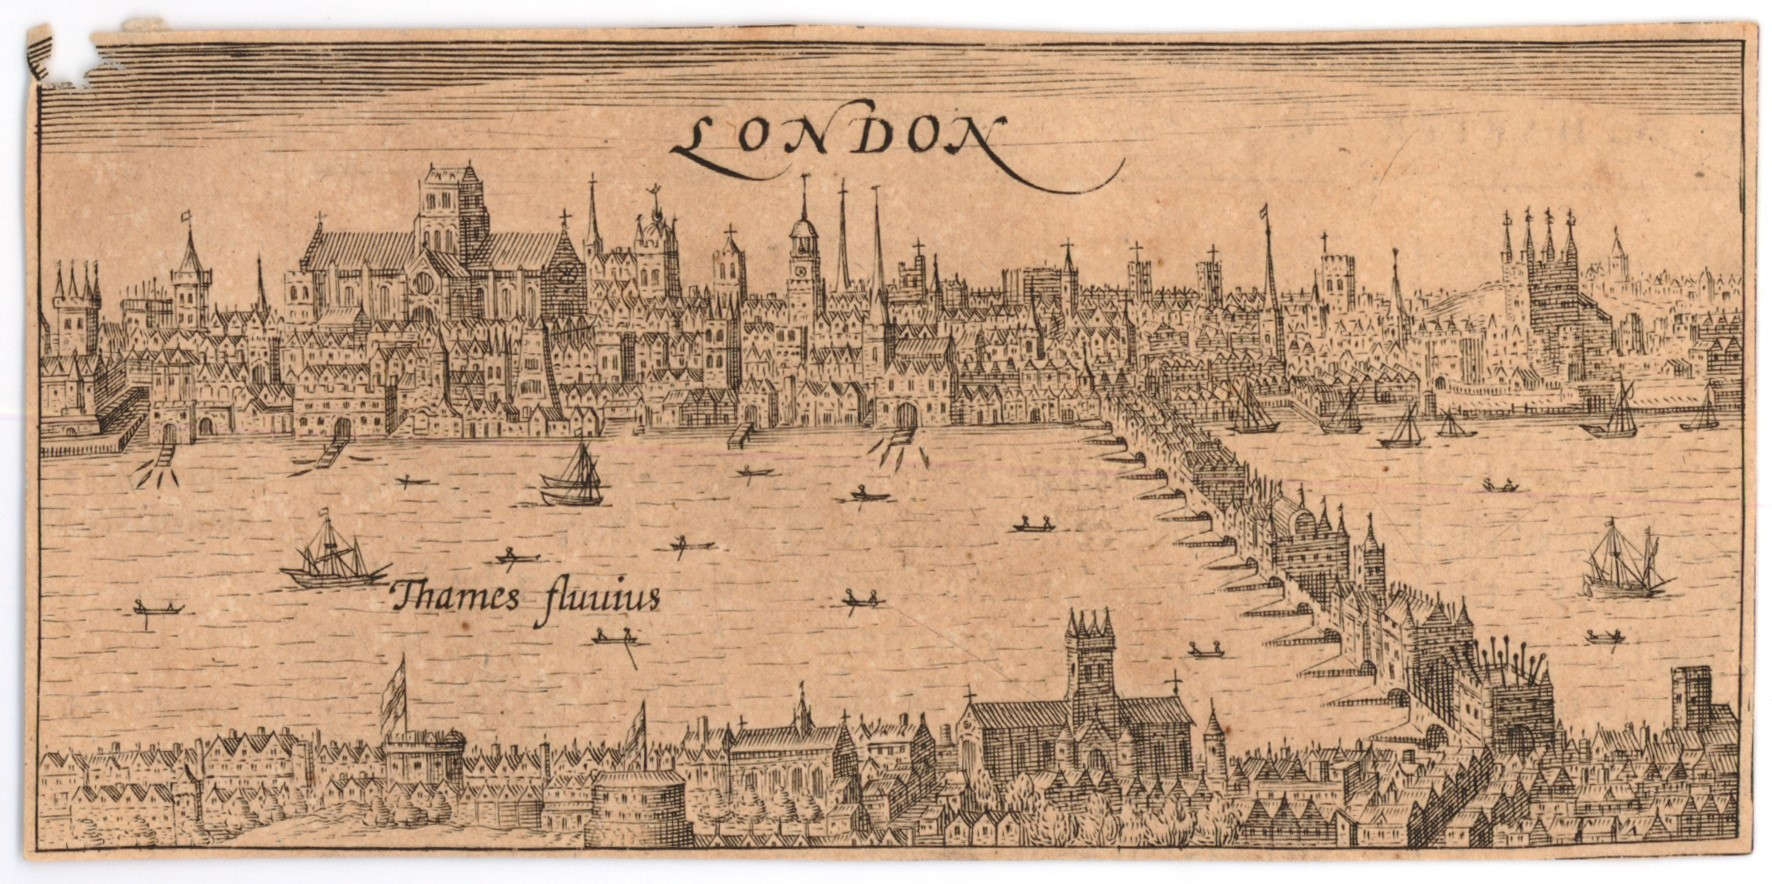 Historical city travel guide: London, late 16th century